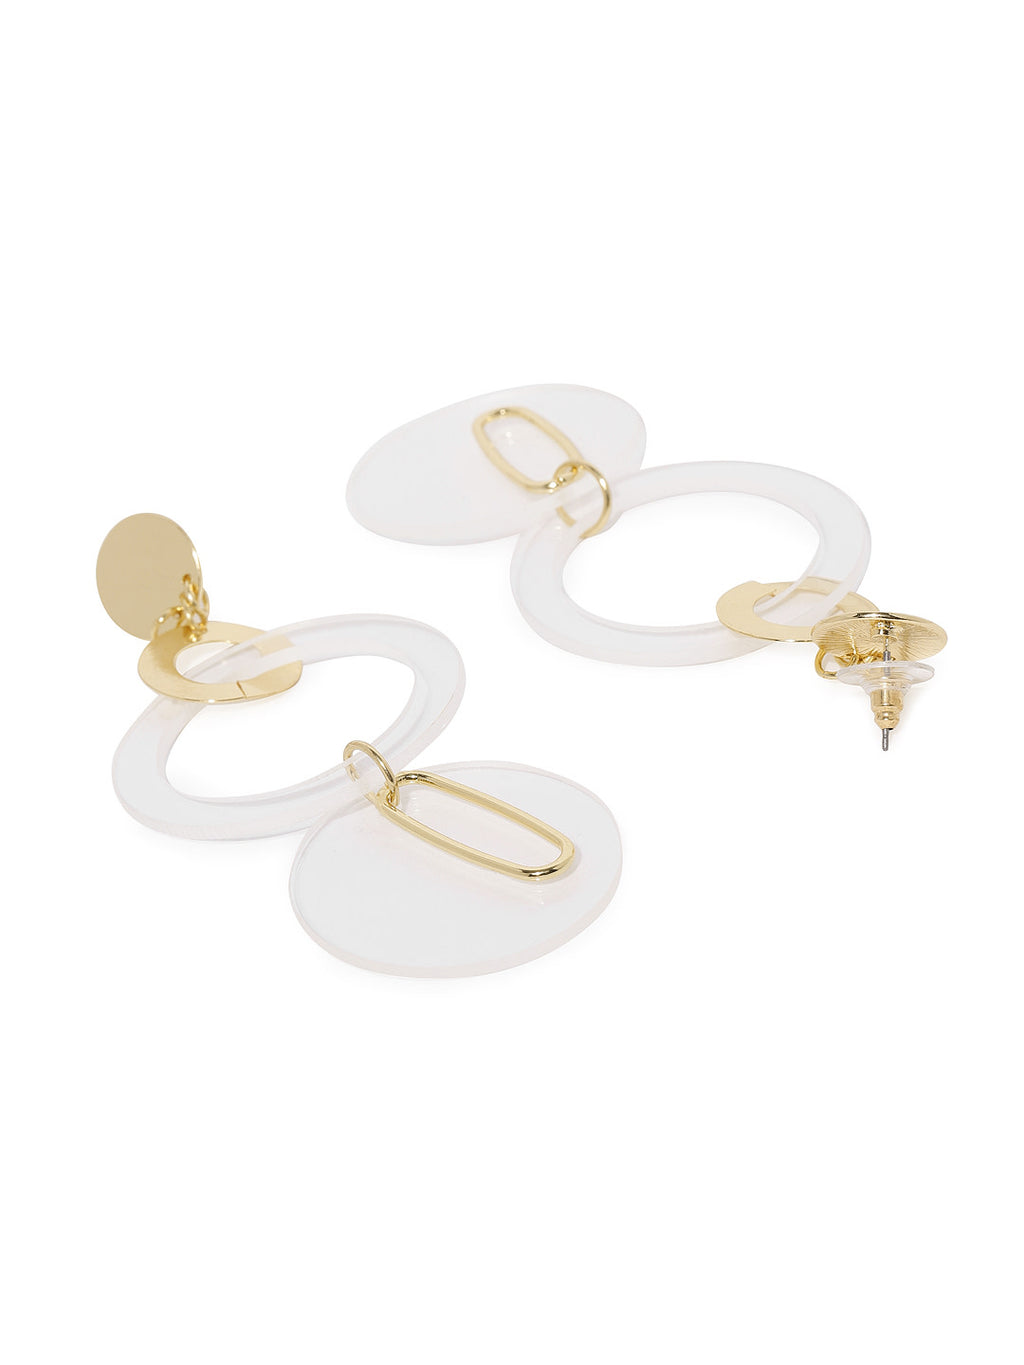 TRANSPARENT CIRCULAR DROP EARRINGS